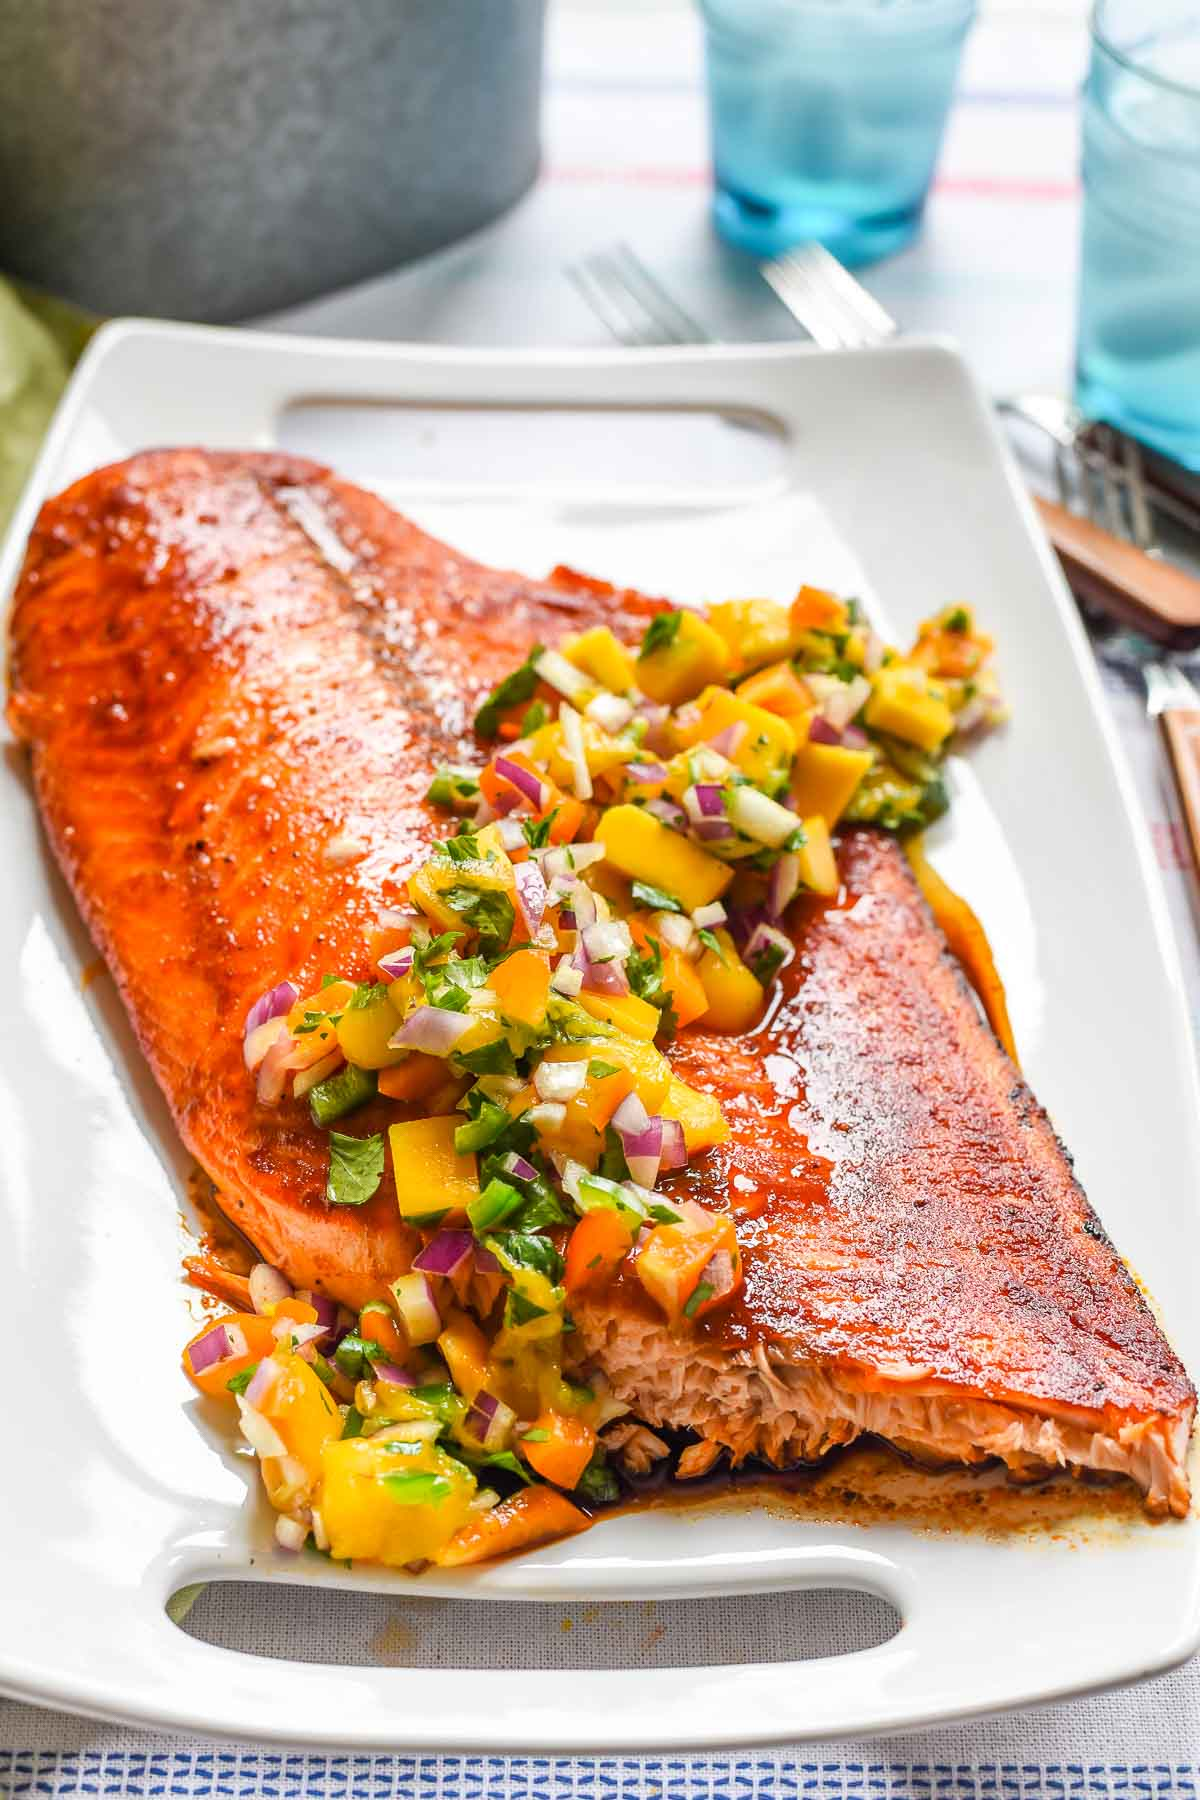 Grilled Salmon with Mango Salsa is a fresh, healthy meal loaded with flavor. This dinner is perfect for summer BBQs!